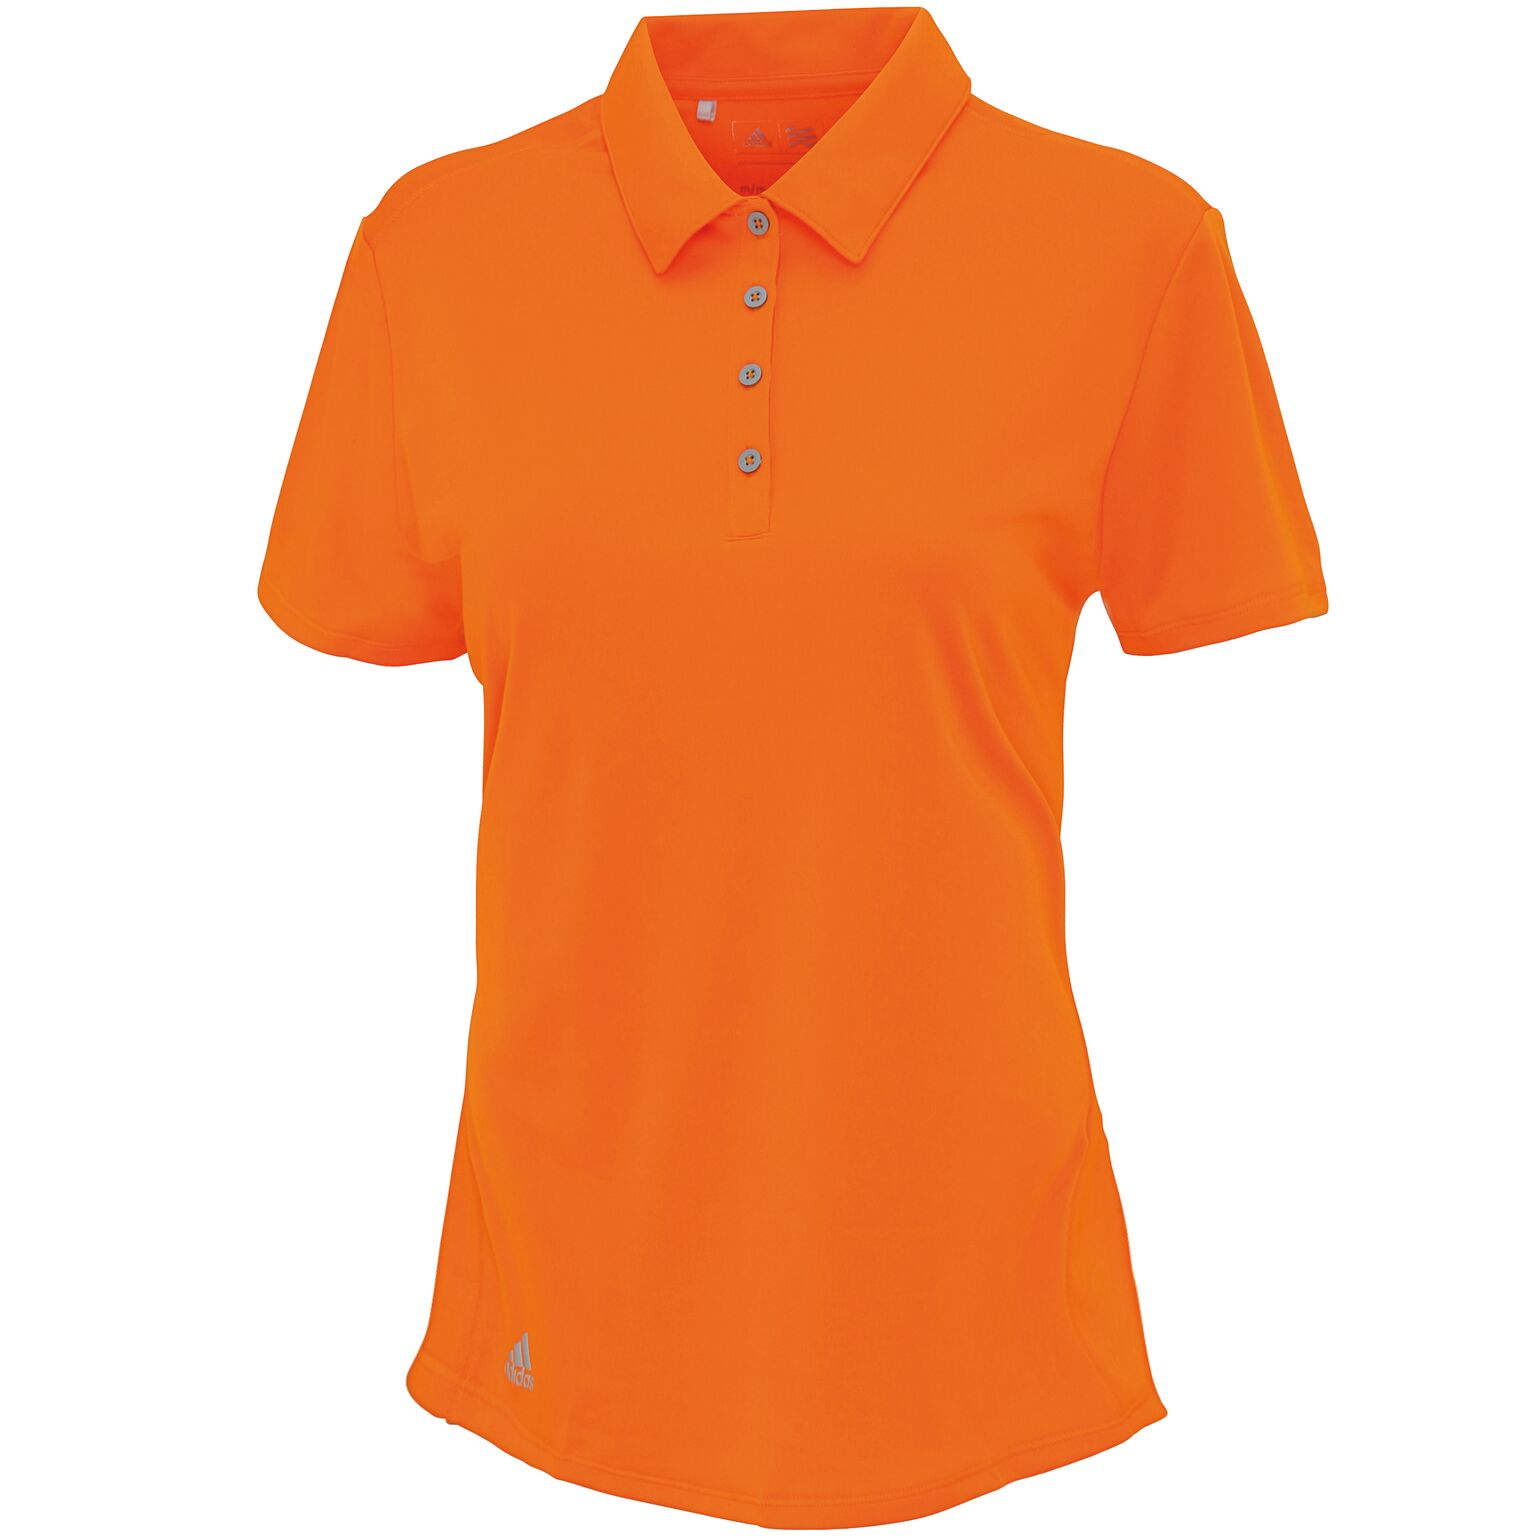 Adidas Women's teamwear polo Bright Orange